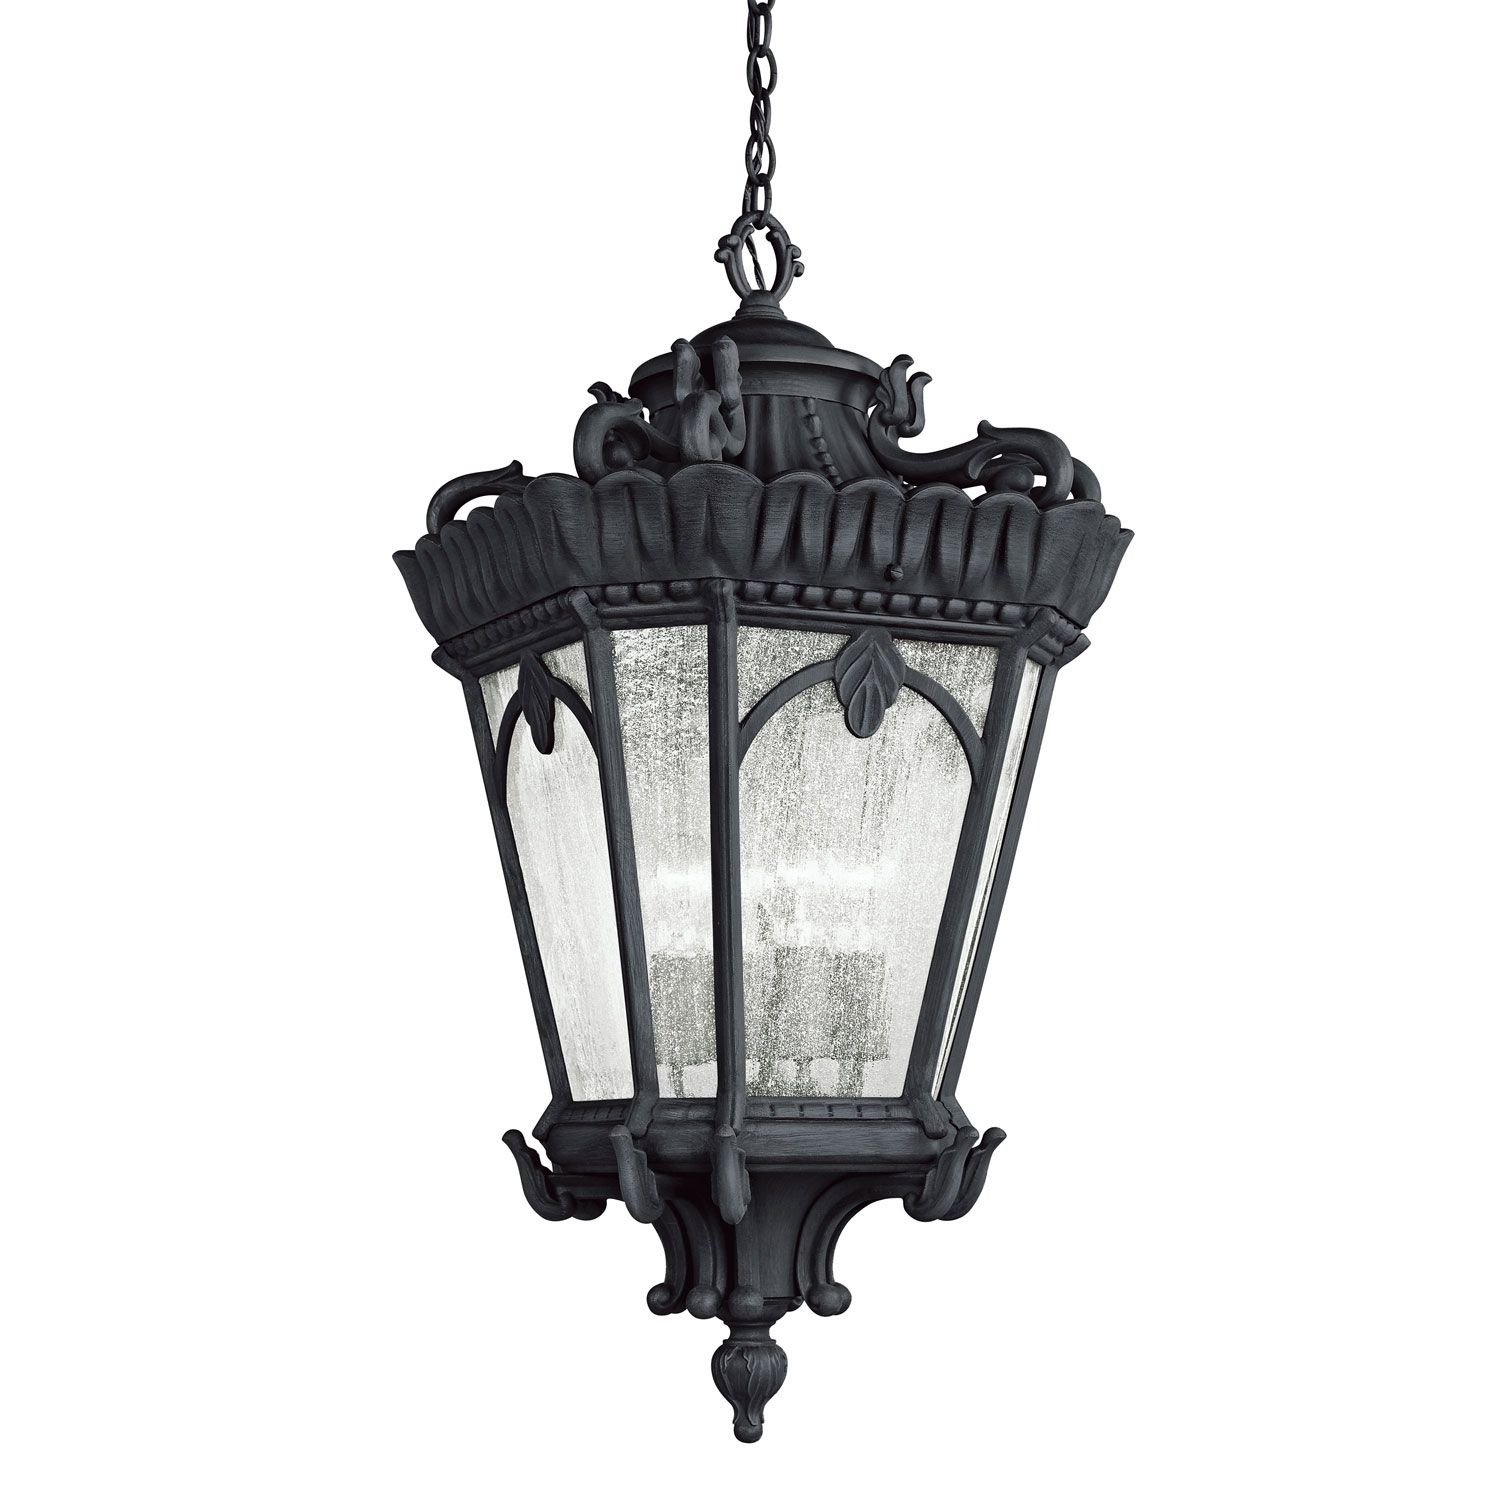 Tournai Outdoor Pendant By Kichler 9564bkt Outdoor Hanging Lights Outdoor Hanging Lanterns Outdoor Pendant Lighting